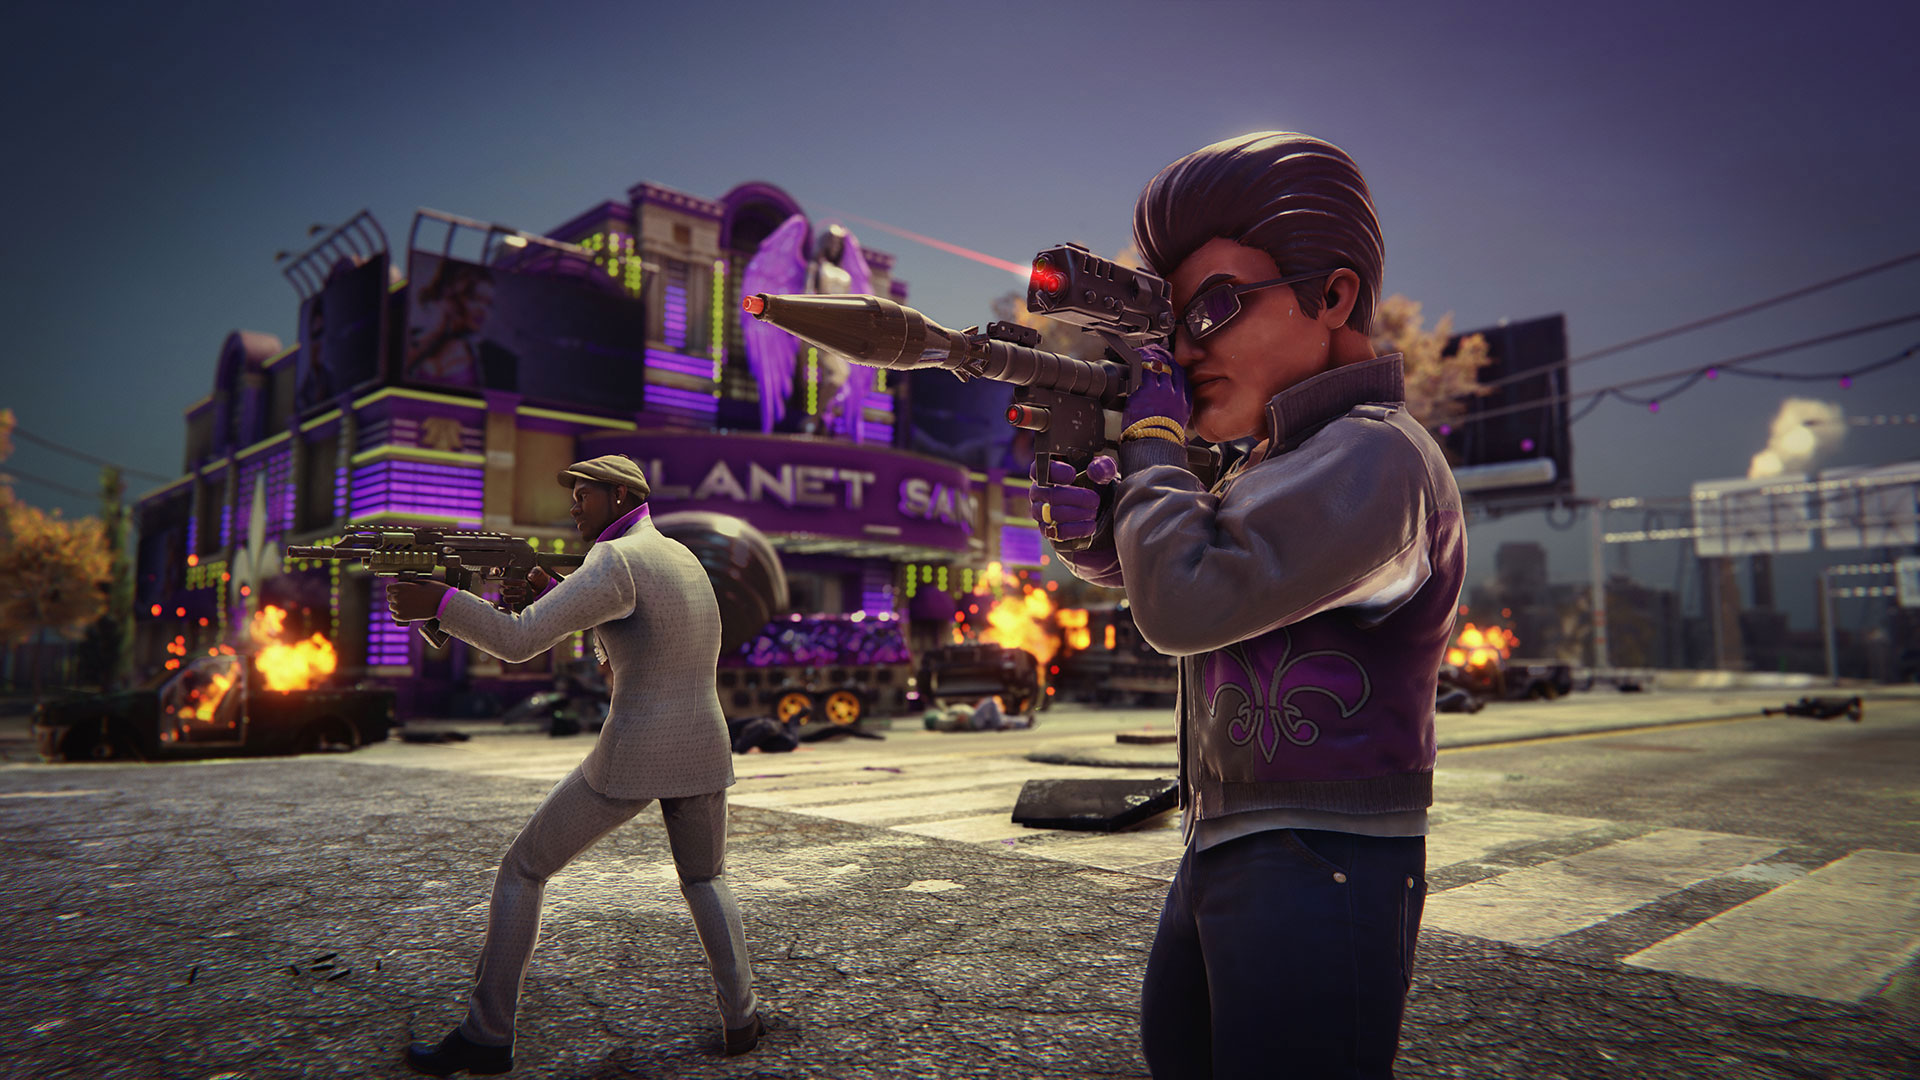 Quelle: Deep Silver - Saints Row: The Third Remastered